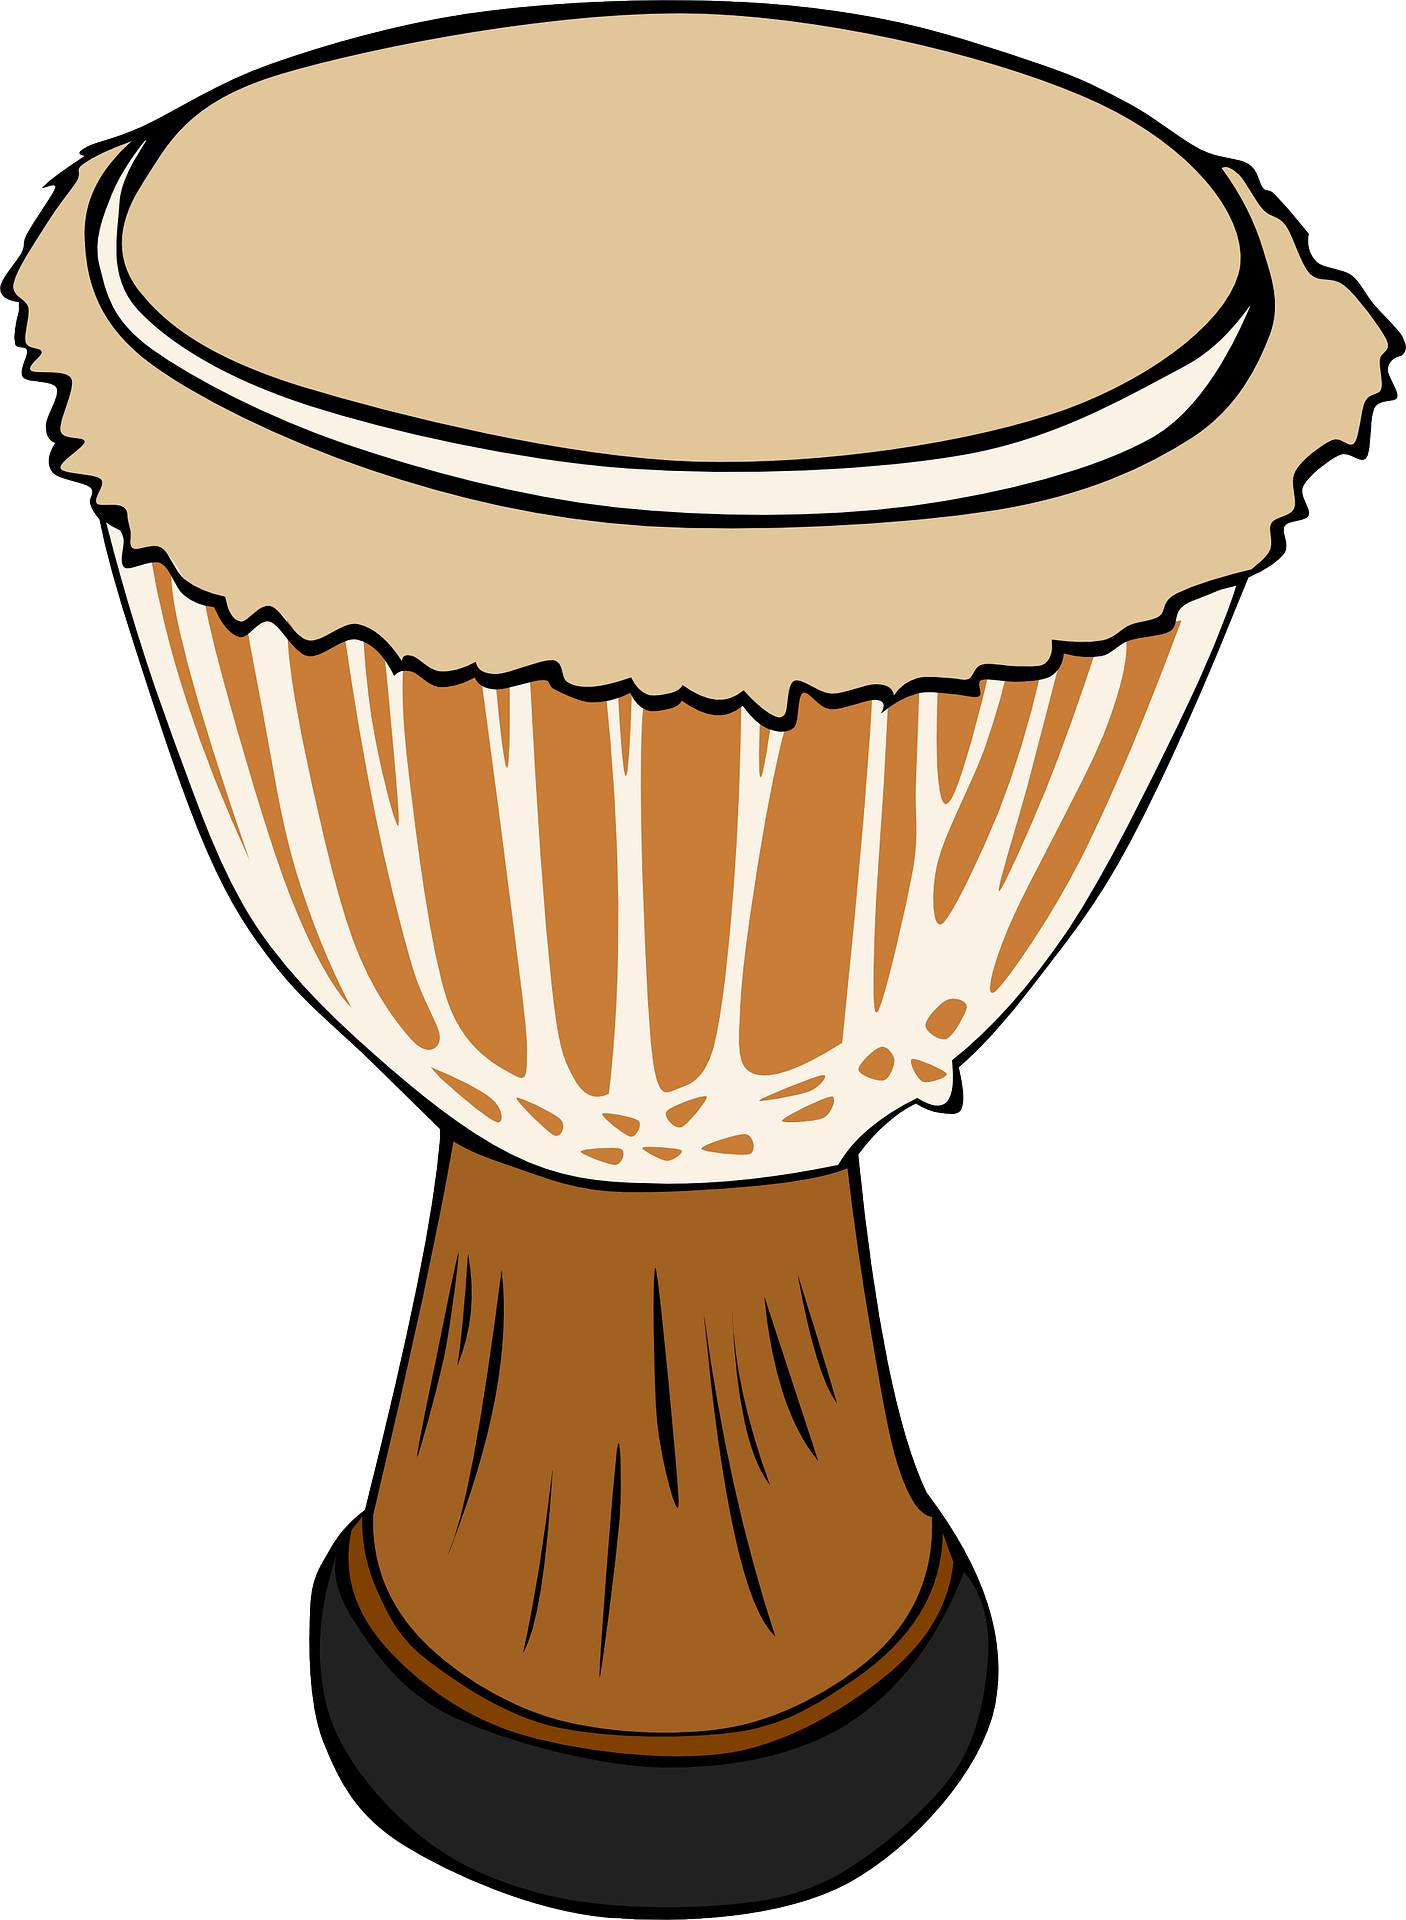 Drums clipart percussionist, Drums percussionist Transparent.